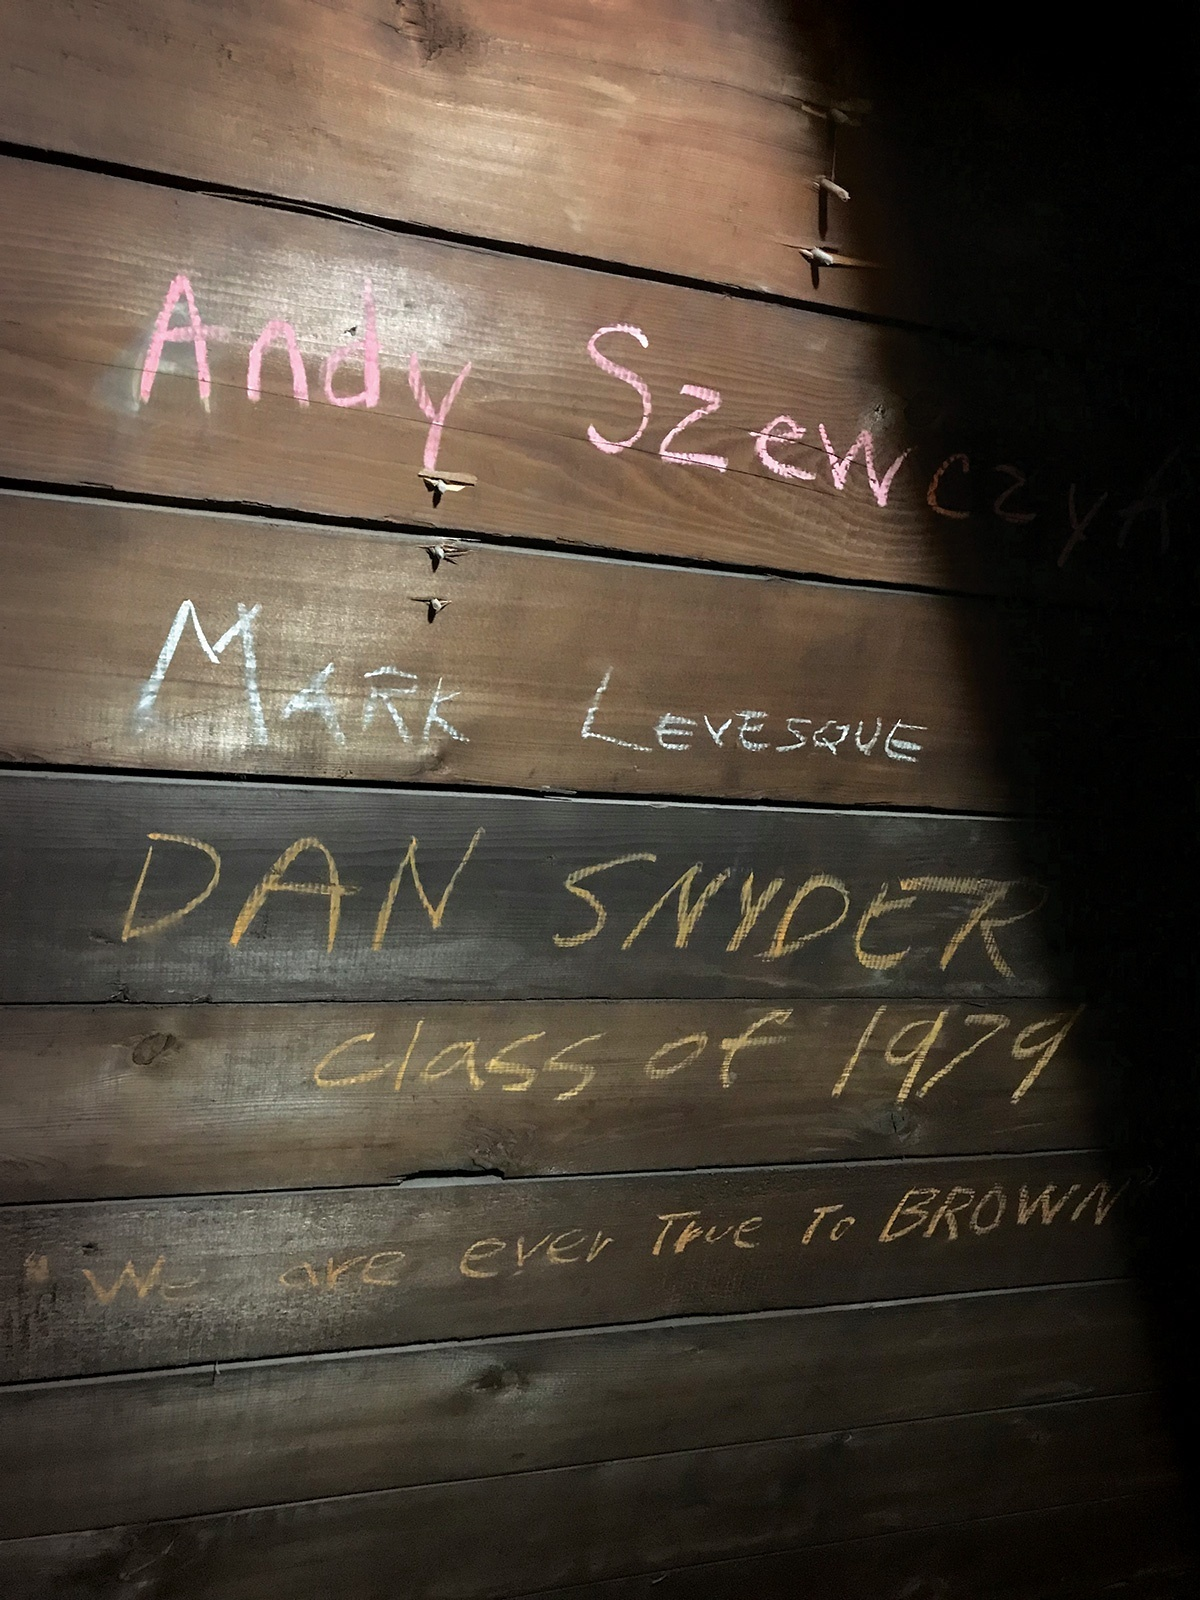 Photo of graffiti on a wooden wall, with the names of several people listed.